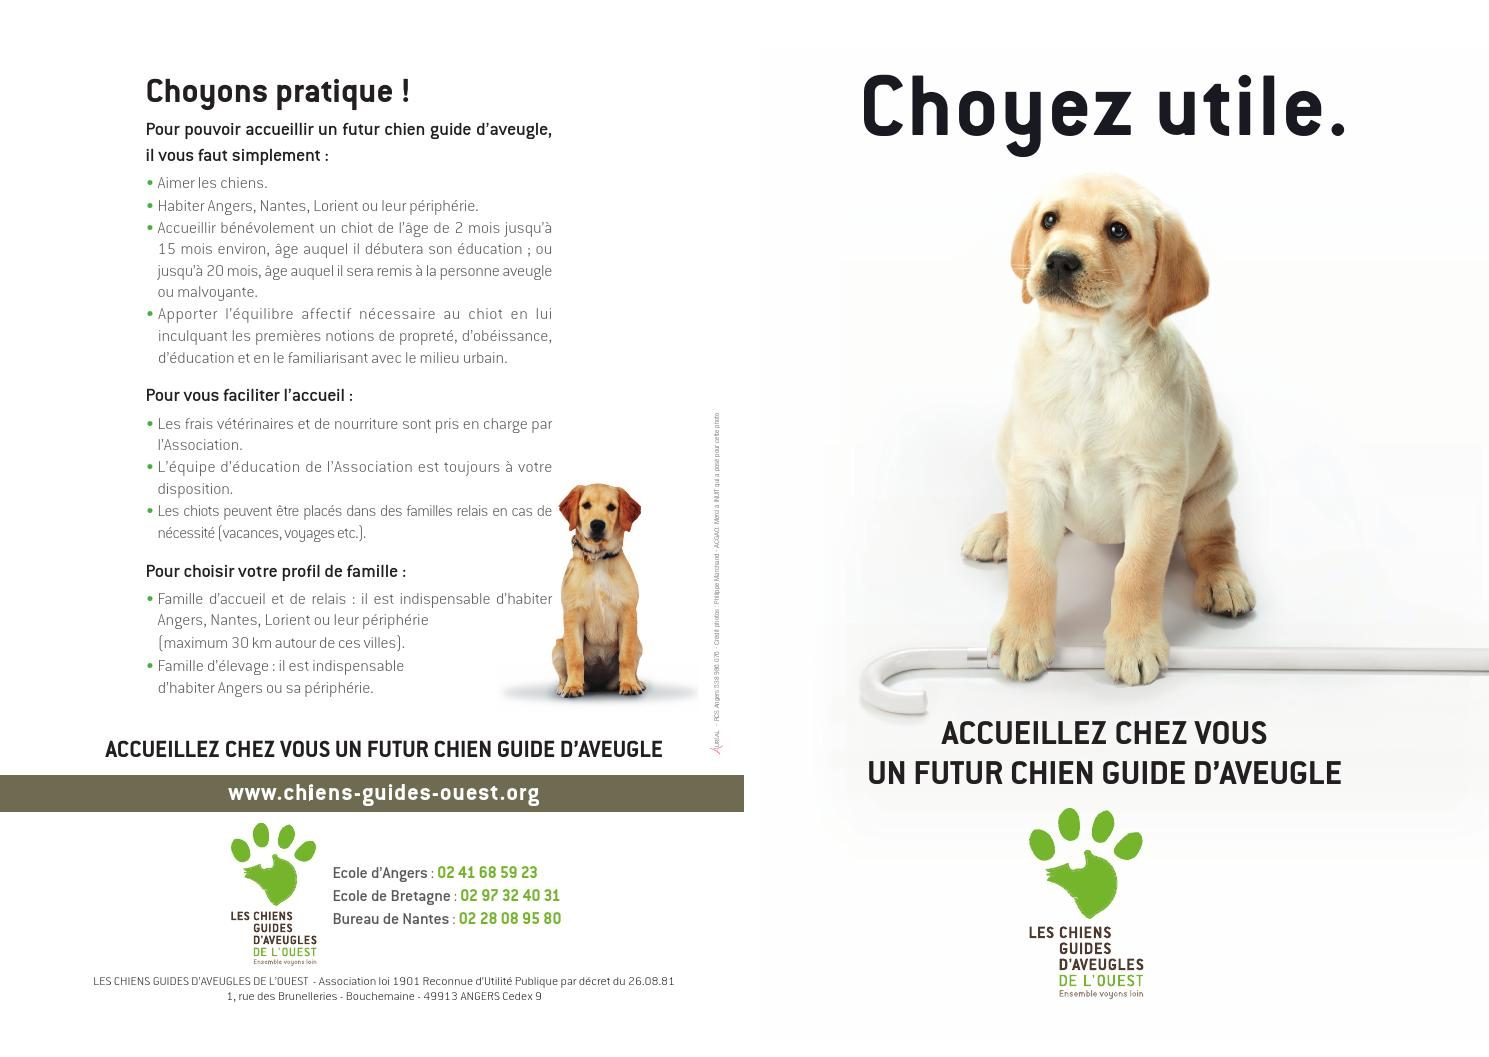 Depliant Choyez Utile By Chien Guide Ouest Issuu